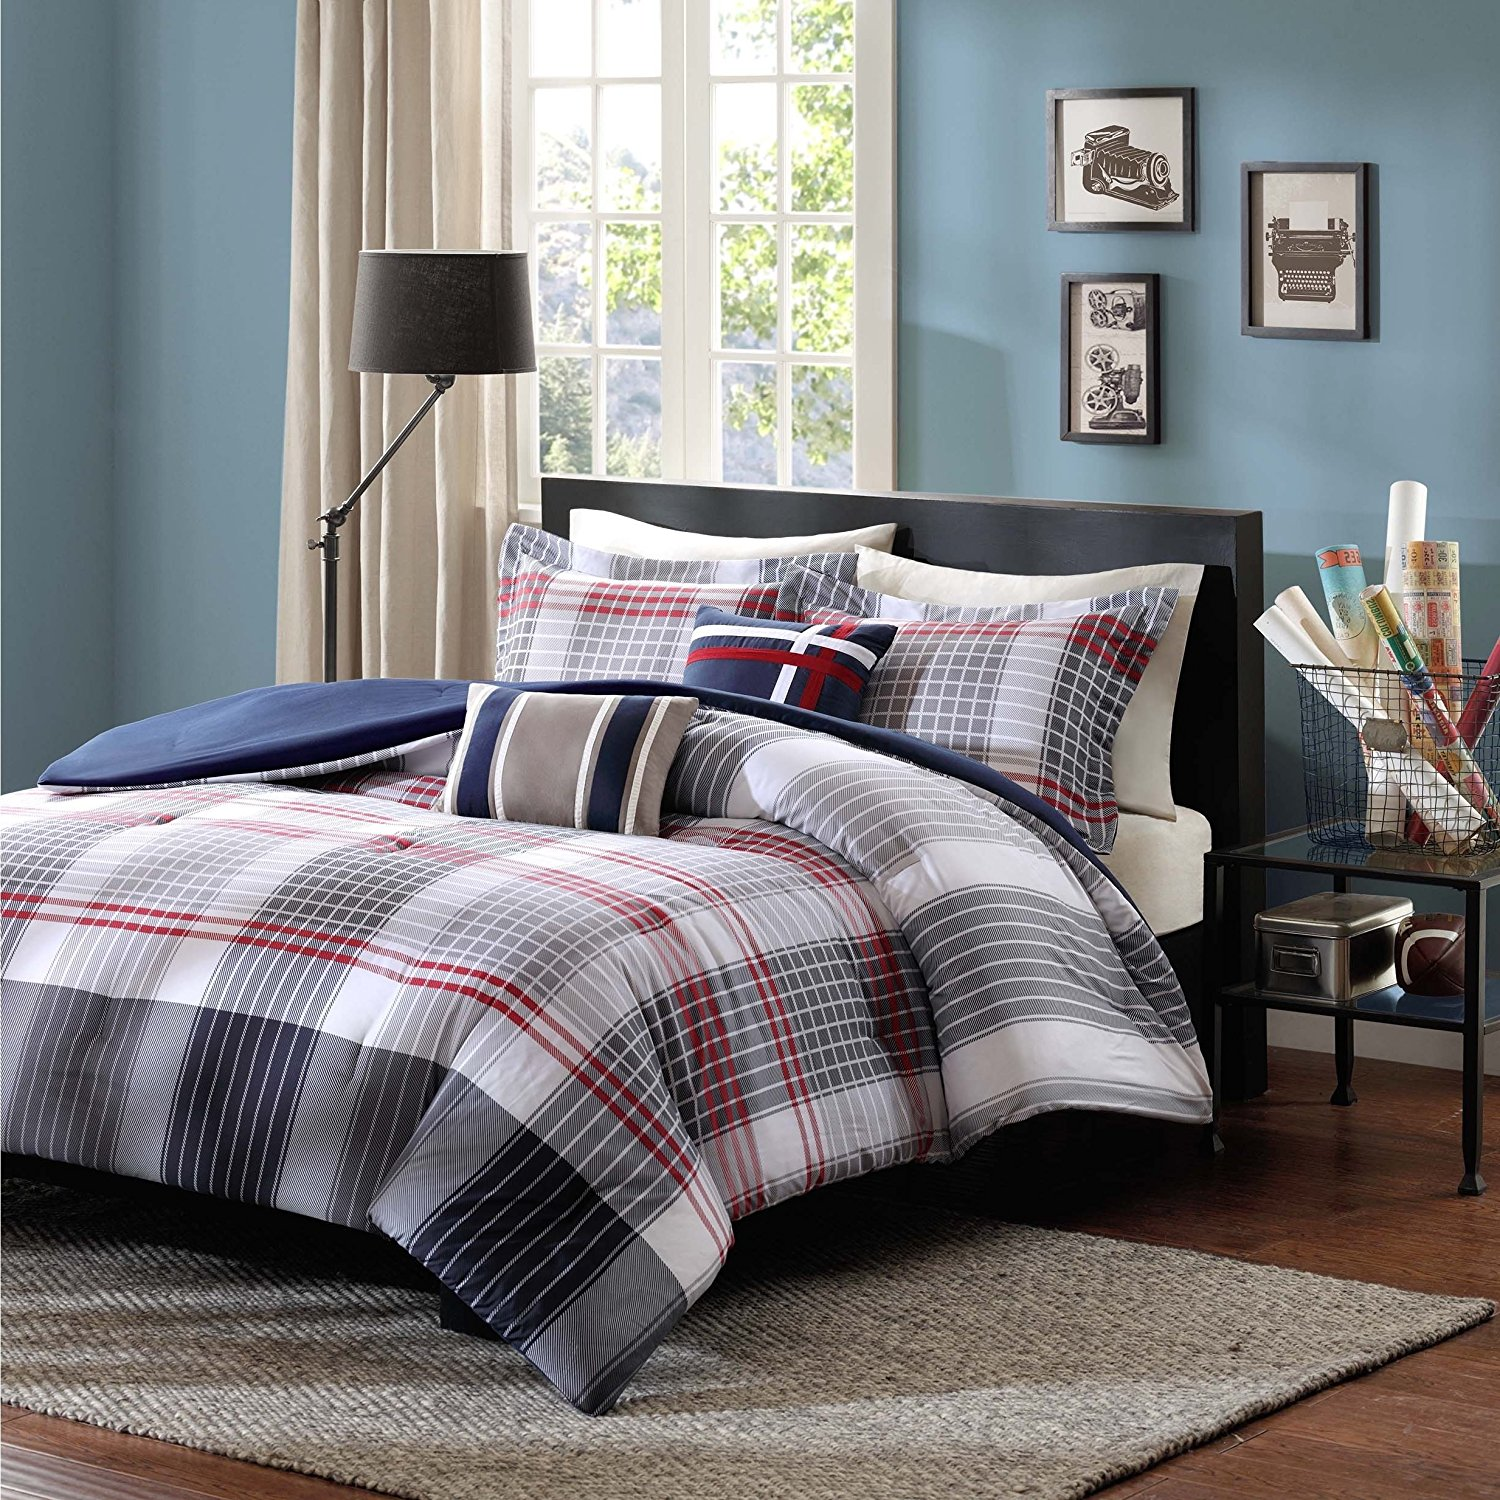 Cheap Twin Boys Comforter Find Twin Boys Comforter Deals On Line At Alibaba Com